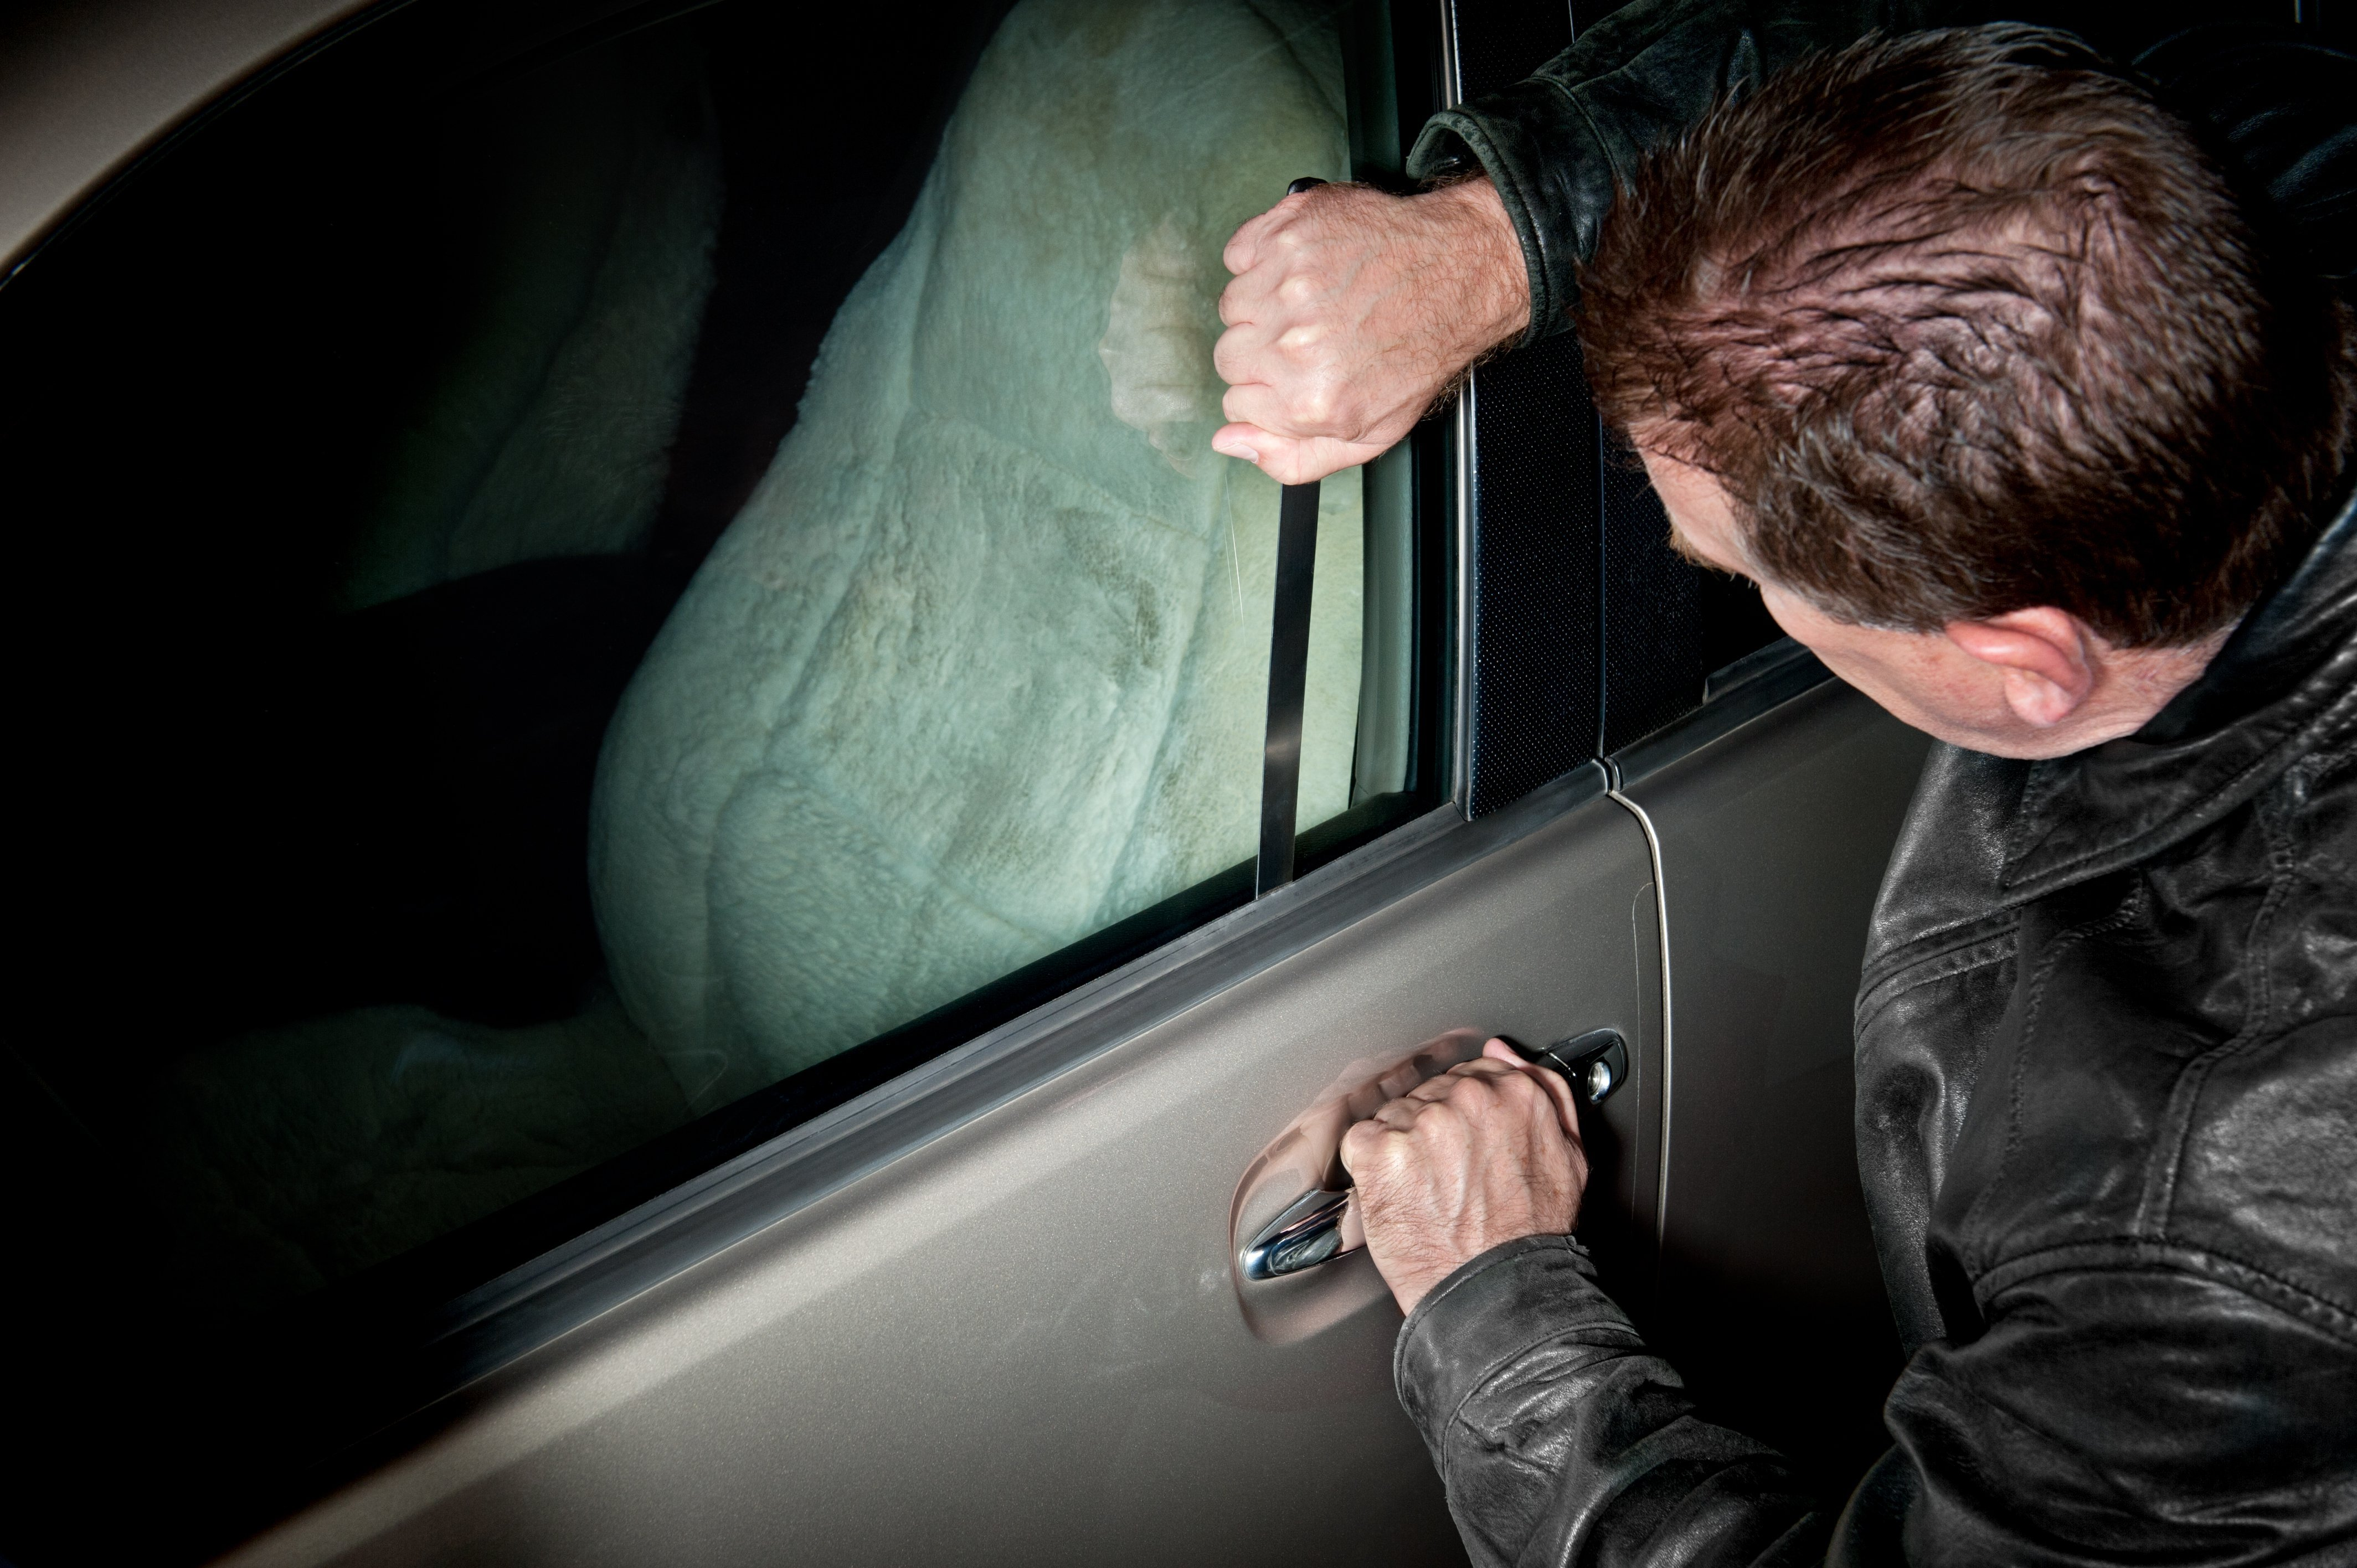 A man trying to open a car door at night. | Source: Shutterstock.